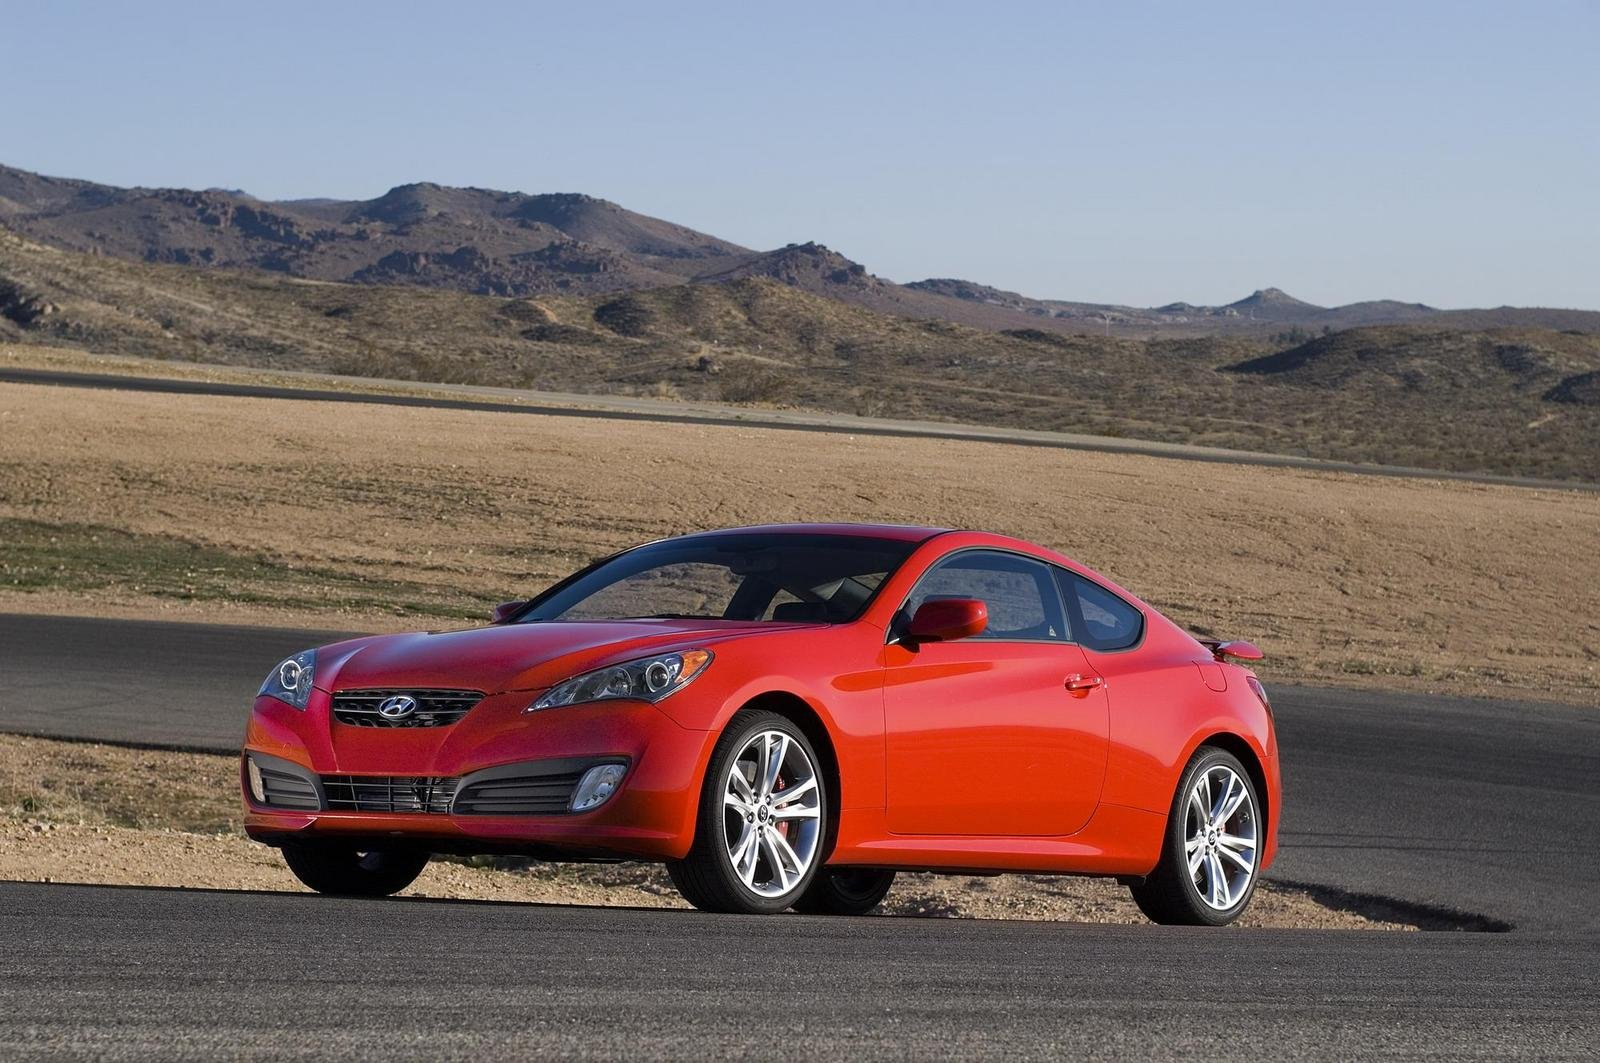 2010 hyundai genesis coupe picture 329153 car review top speed. Black Bedroom Furniture Sets. Home Design Ideas